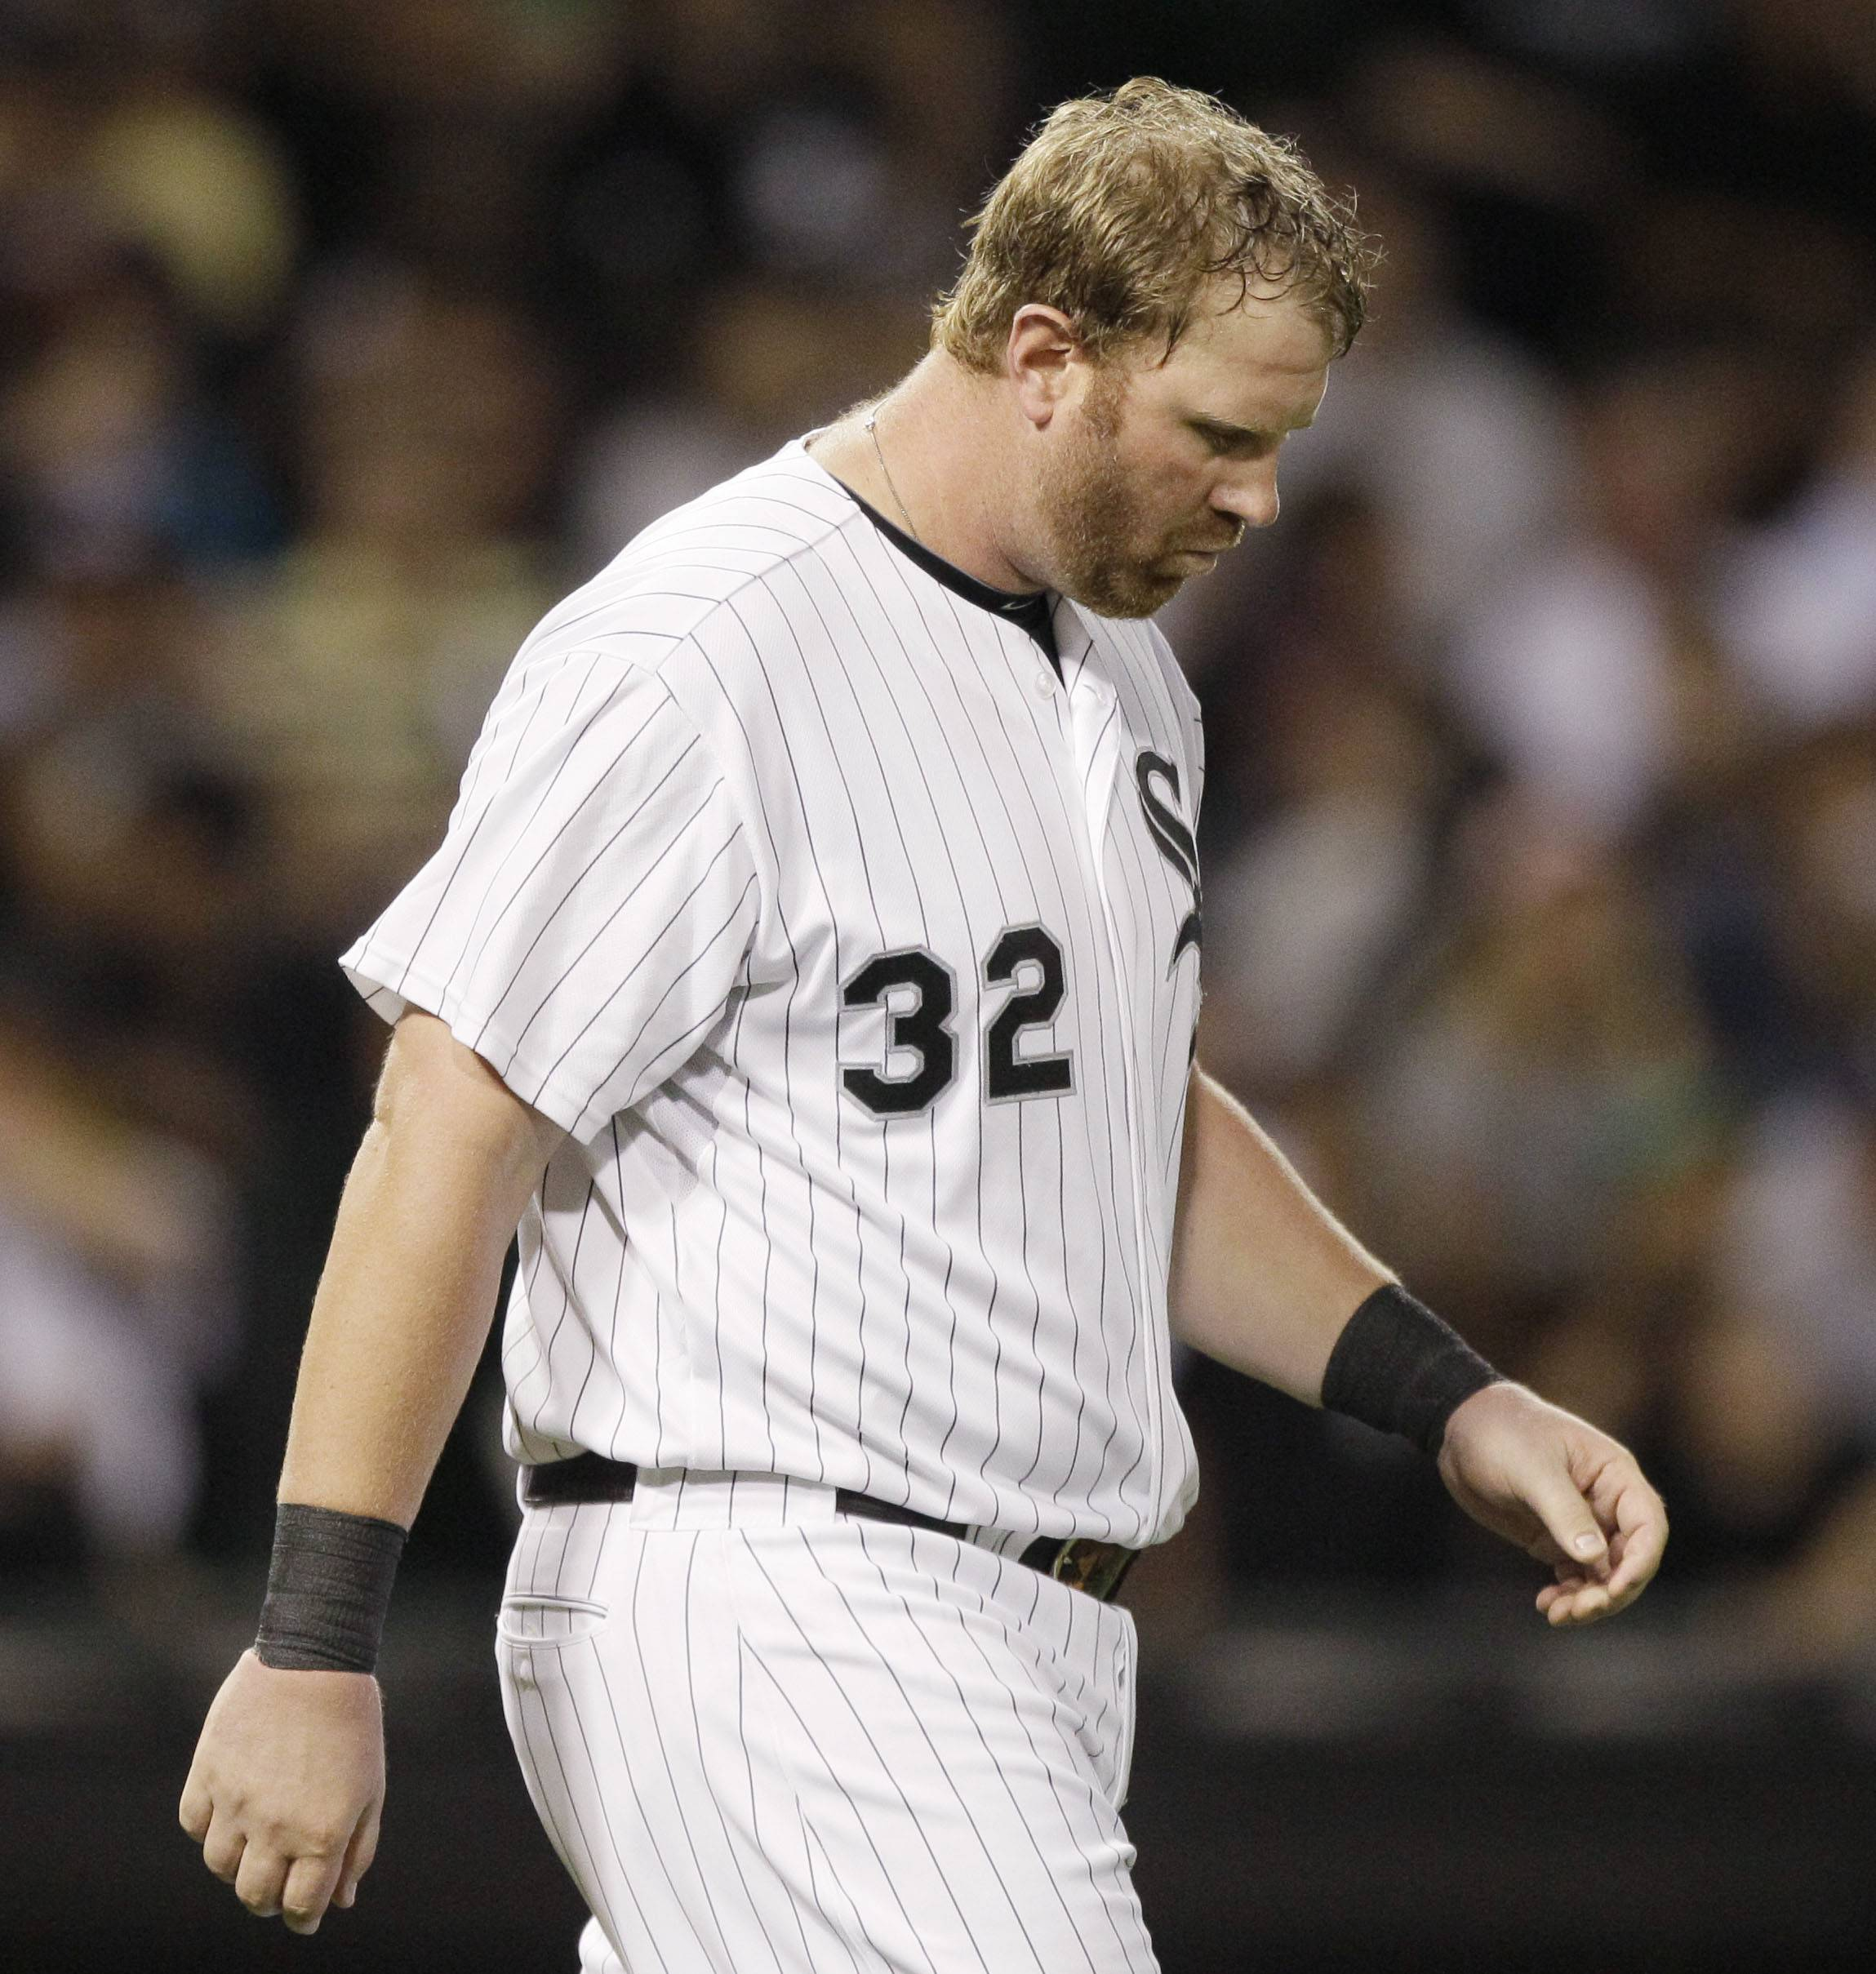 Adam Dunn looks down as he walks on the field after striking out during the fifth inning Thursday night at U.S. Cellular Field.